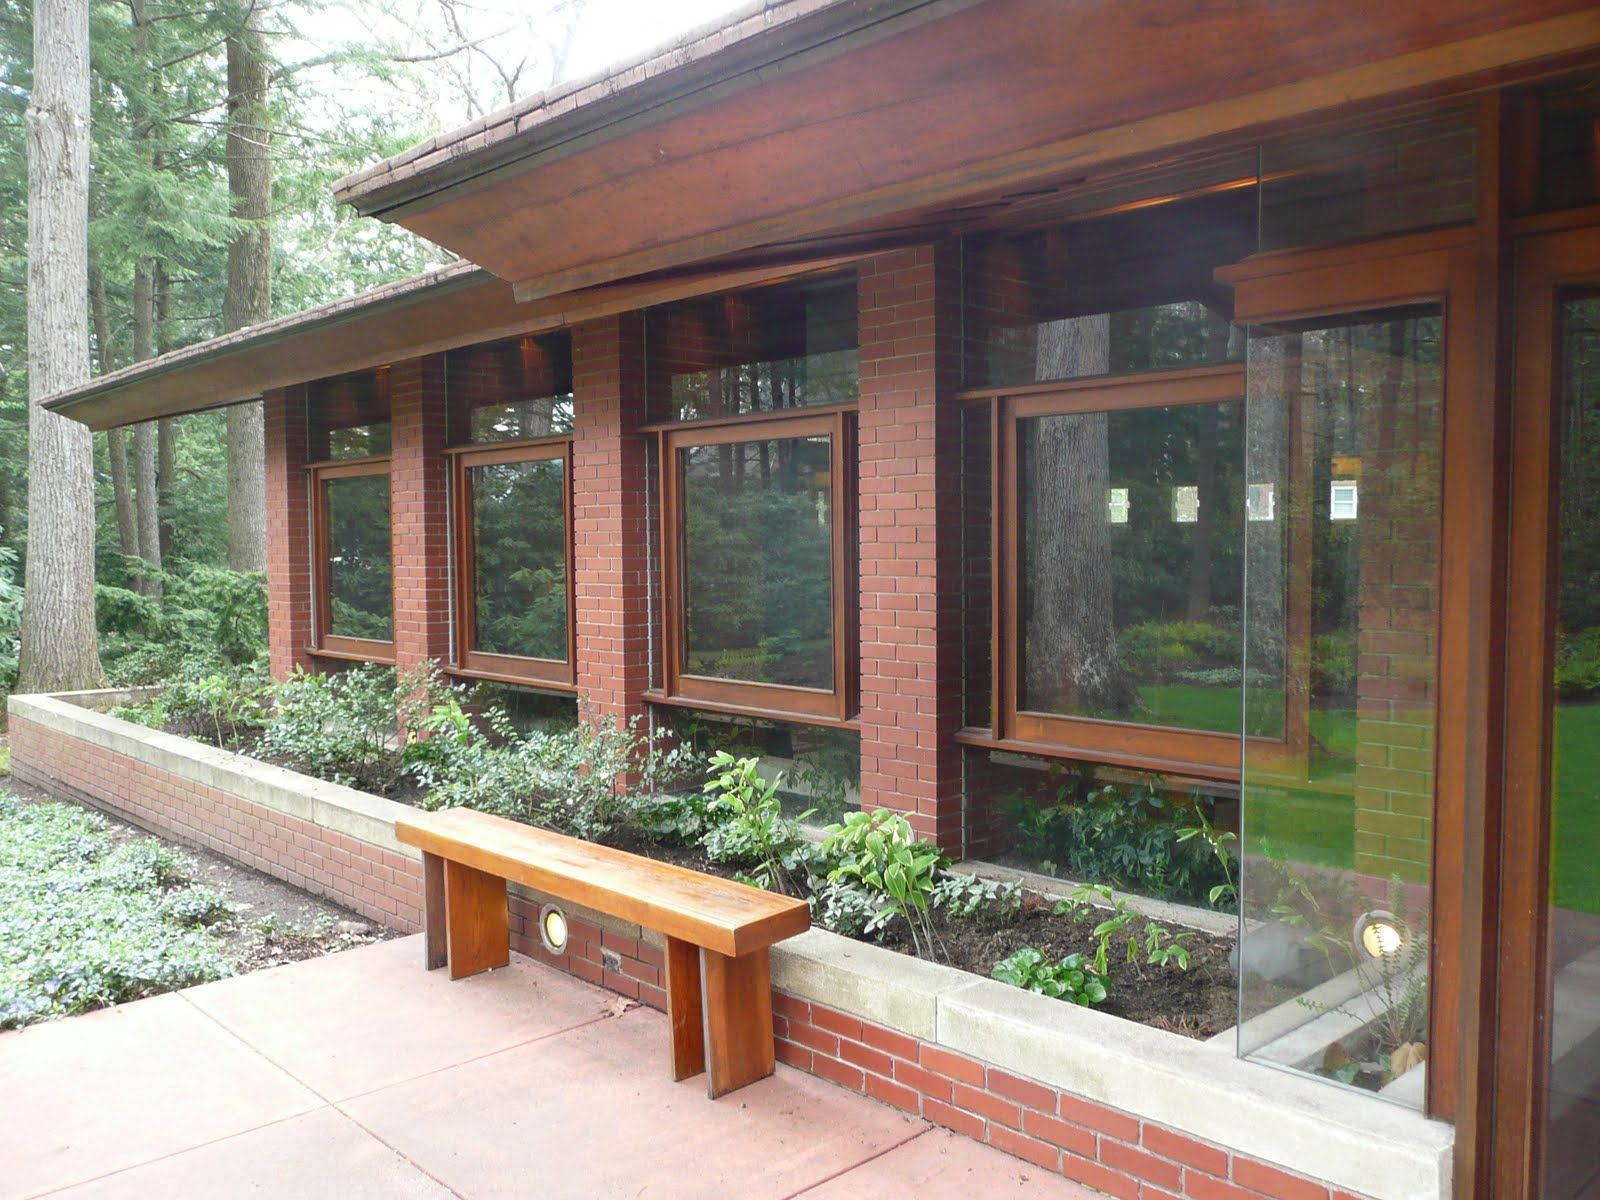 Frank Lloyd Wright Usonian Home Love The Details Like The Floating